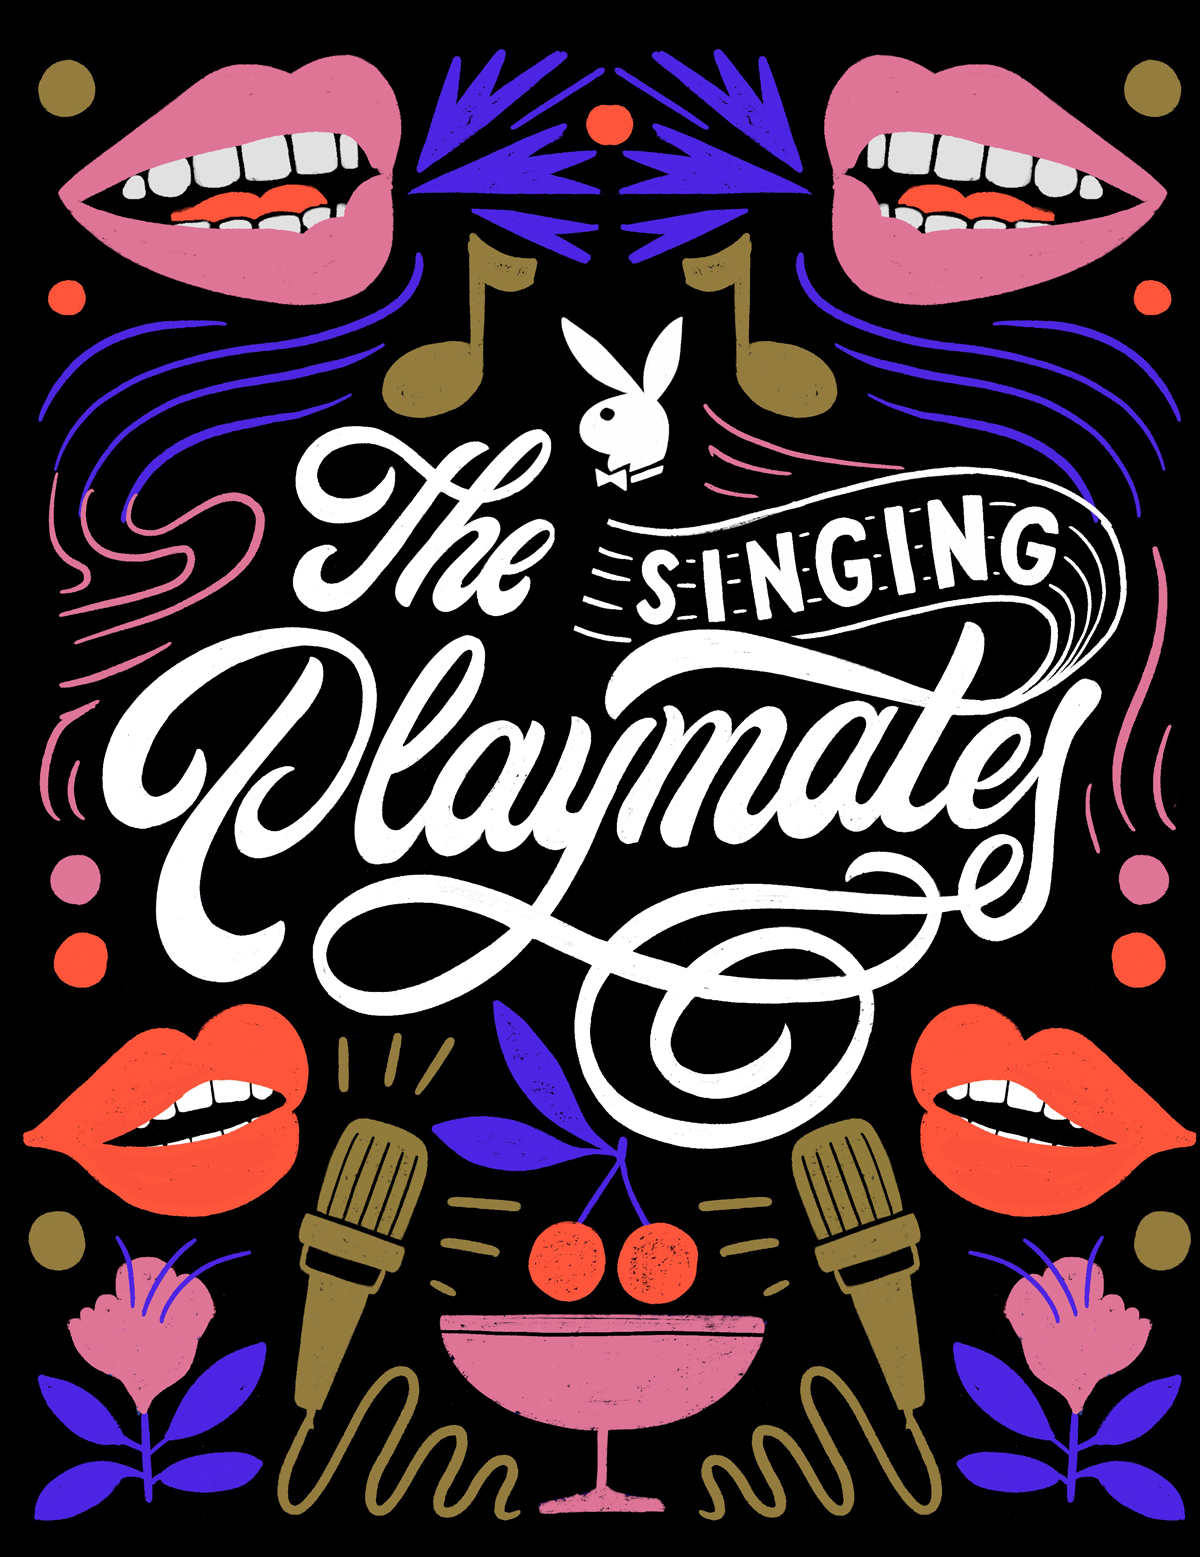 Playboy_SingingPlaymates_Sketch_03.jpg